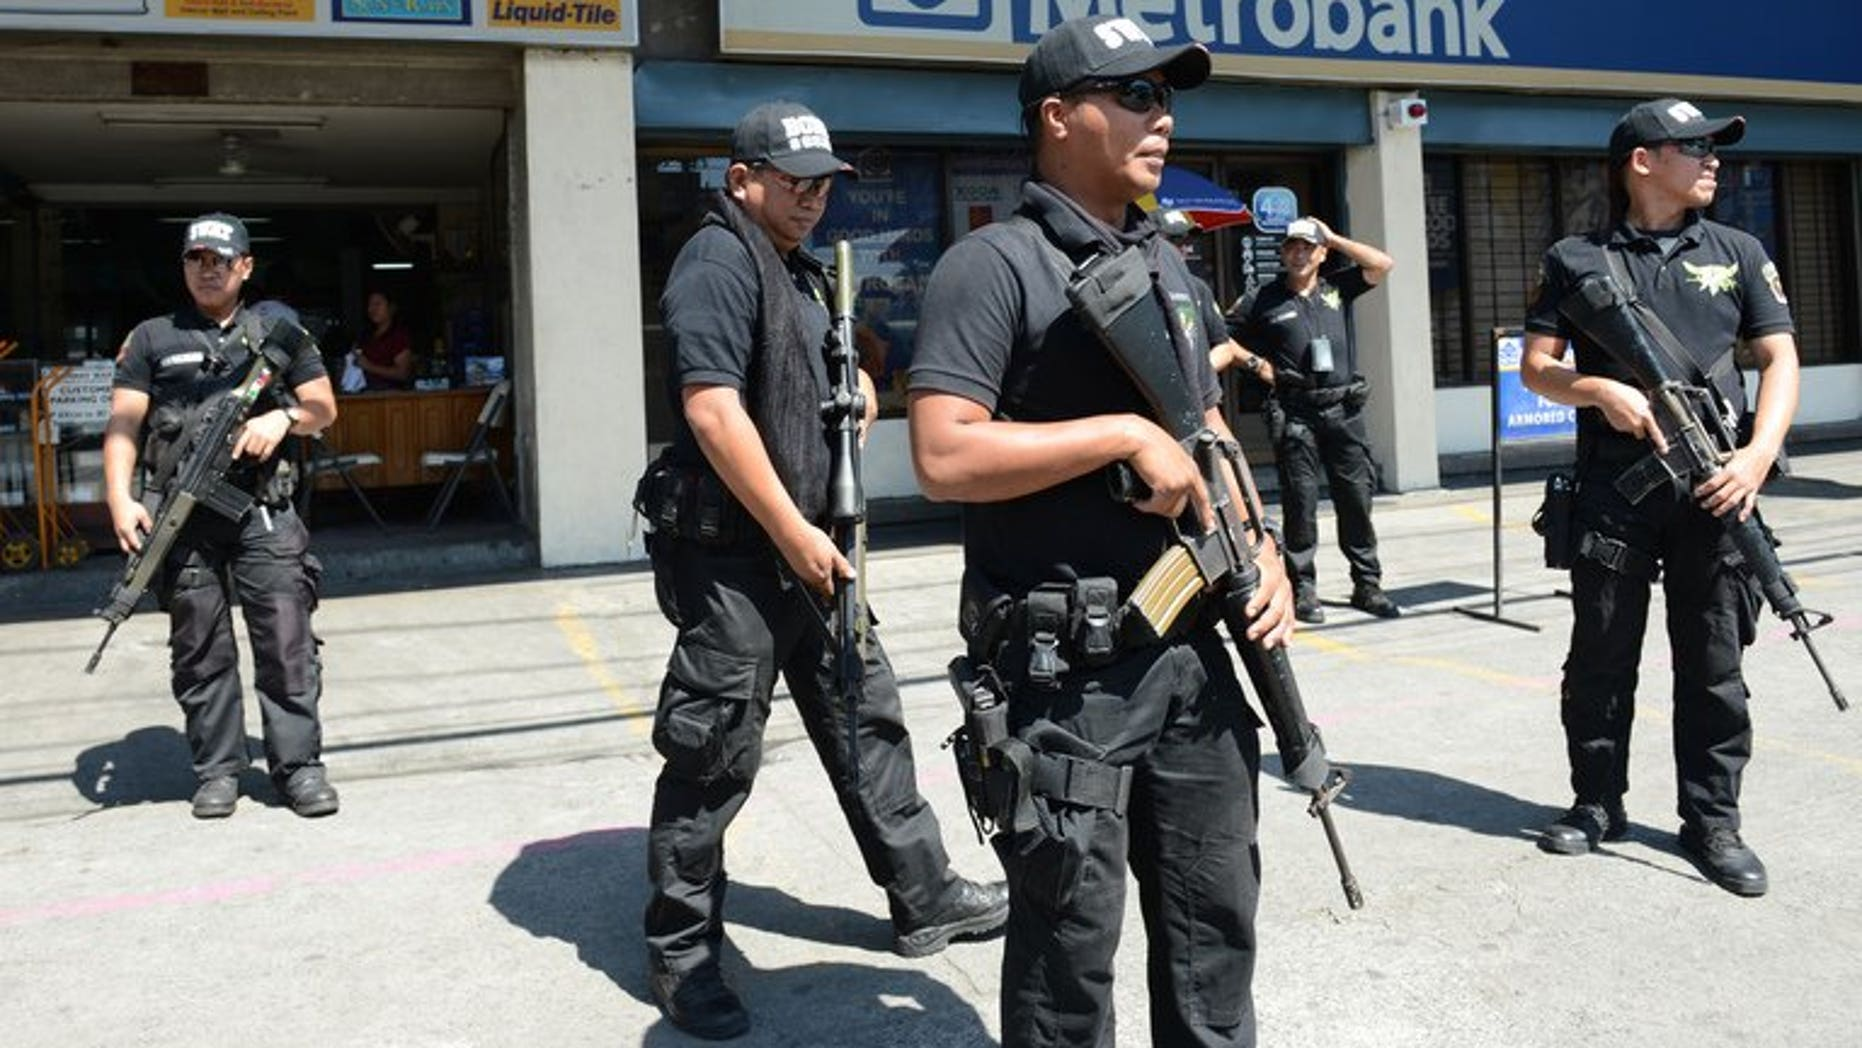 Members of the Pasay City SWAT team patrol in front of a bank in Manila on February 1, 2013. Five young men were shot dead before dawn on Wednesday in a street on the outskirts of the Philippines' main business district, police said.